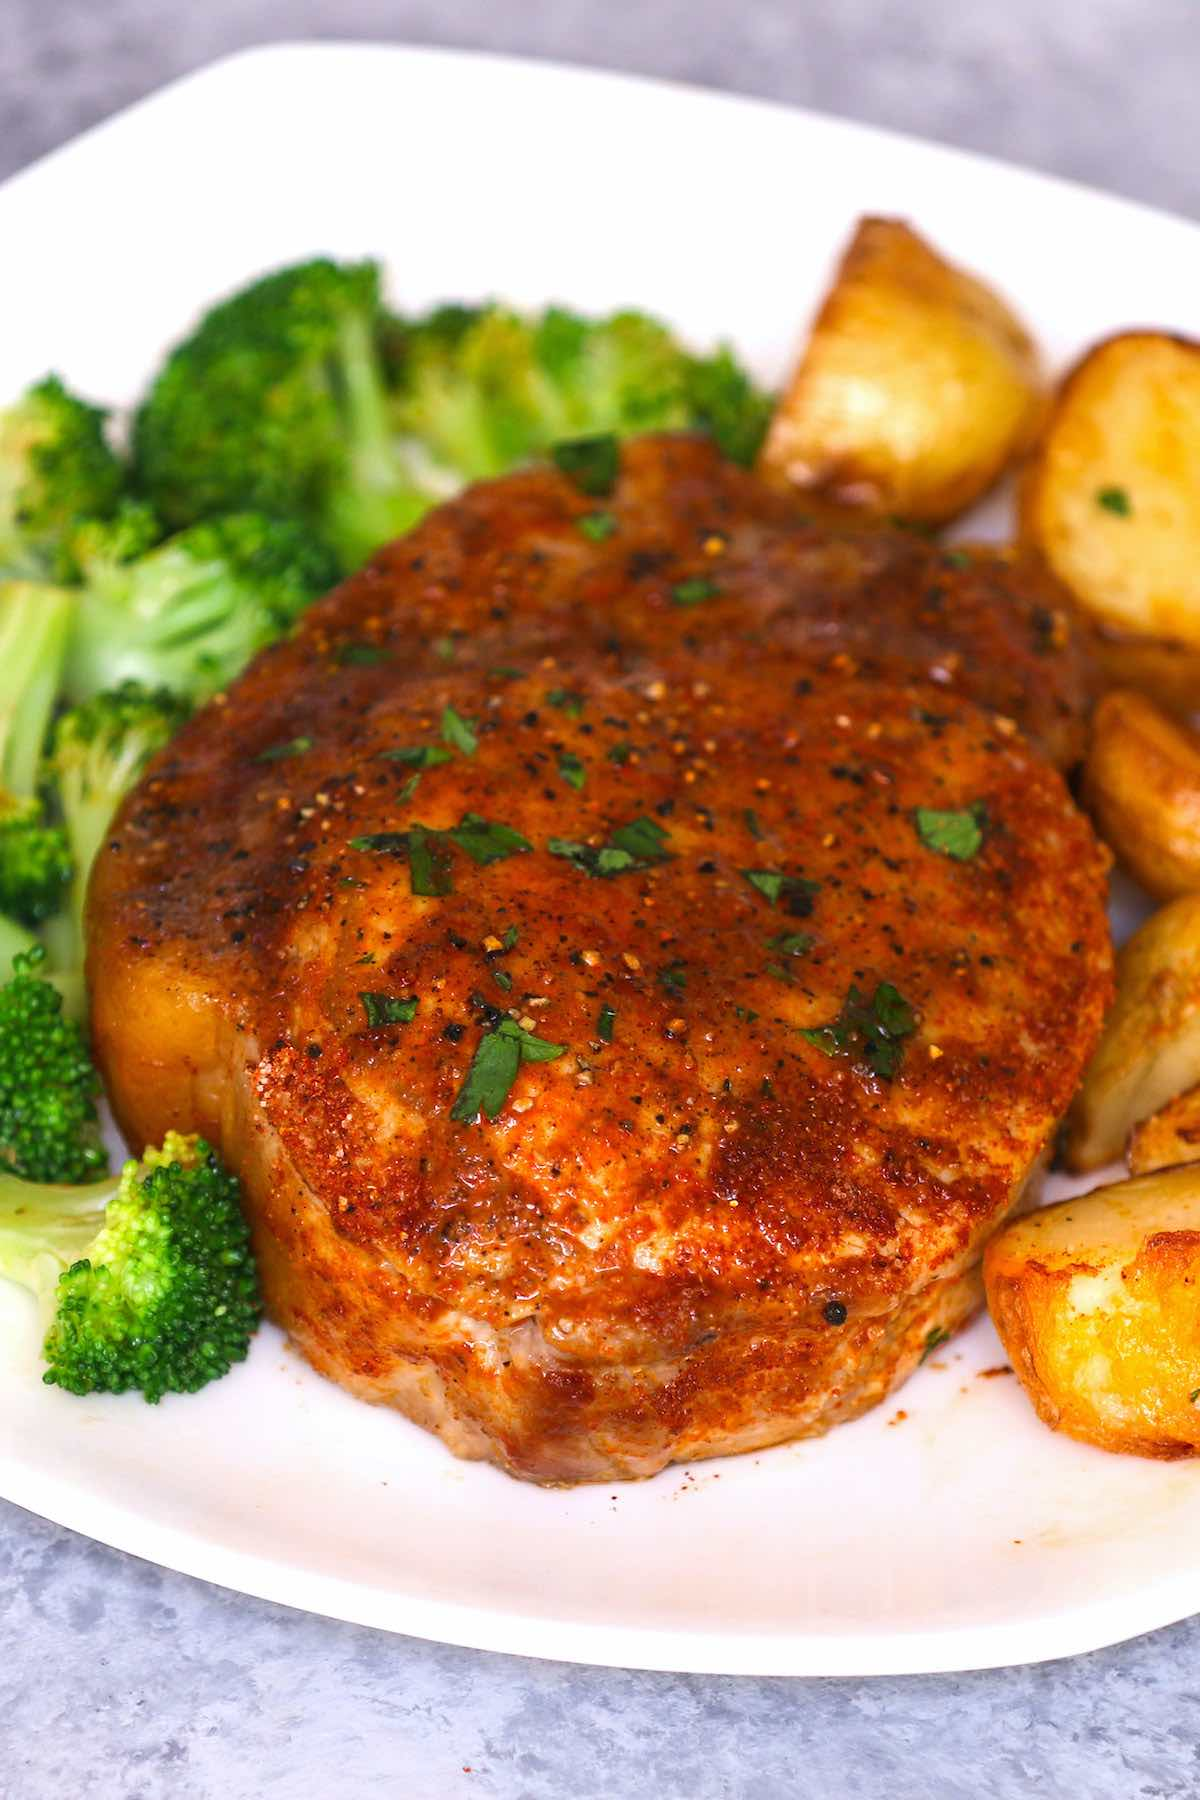 Never make dry and overcooked pork chops again! This Sous Vide Boneless Pork Chops recipe makes perfect juicy and tender pork that's impossible to achieve with traditional methods! Sous vide machine cooks the chops to your targeted temperature precisely – extremely easy to make with very little fuss. I love how juicy they come out EVERY TIME!